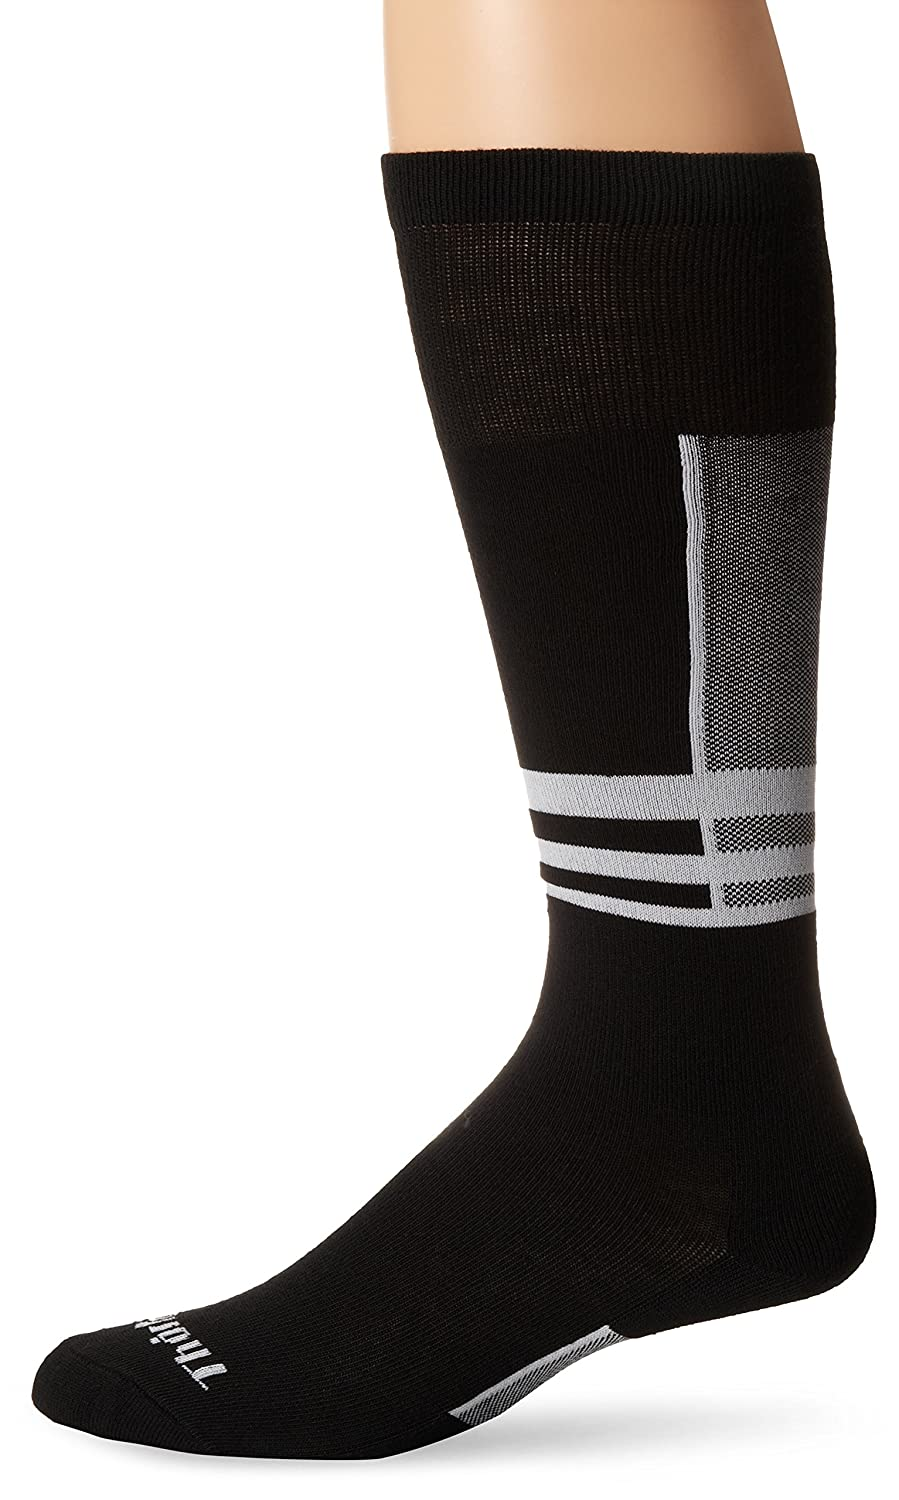 Men's - Women's Ultra Thin Skiing Over-the-calf Socks